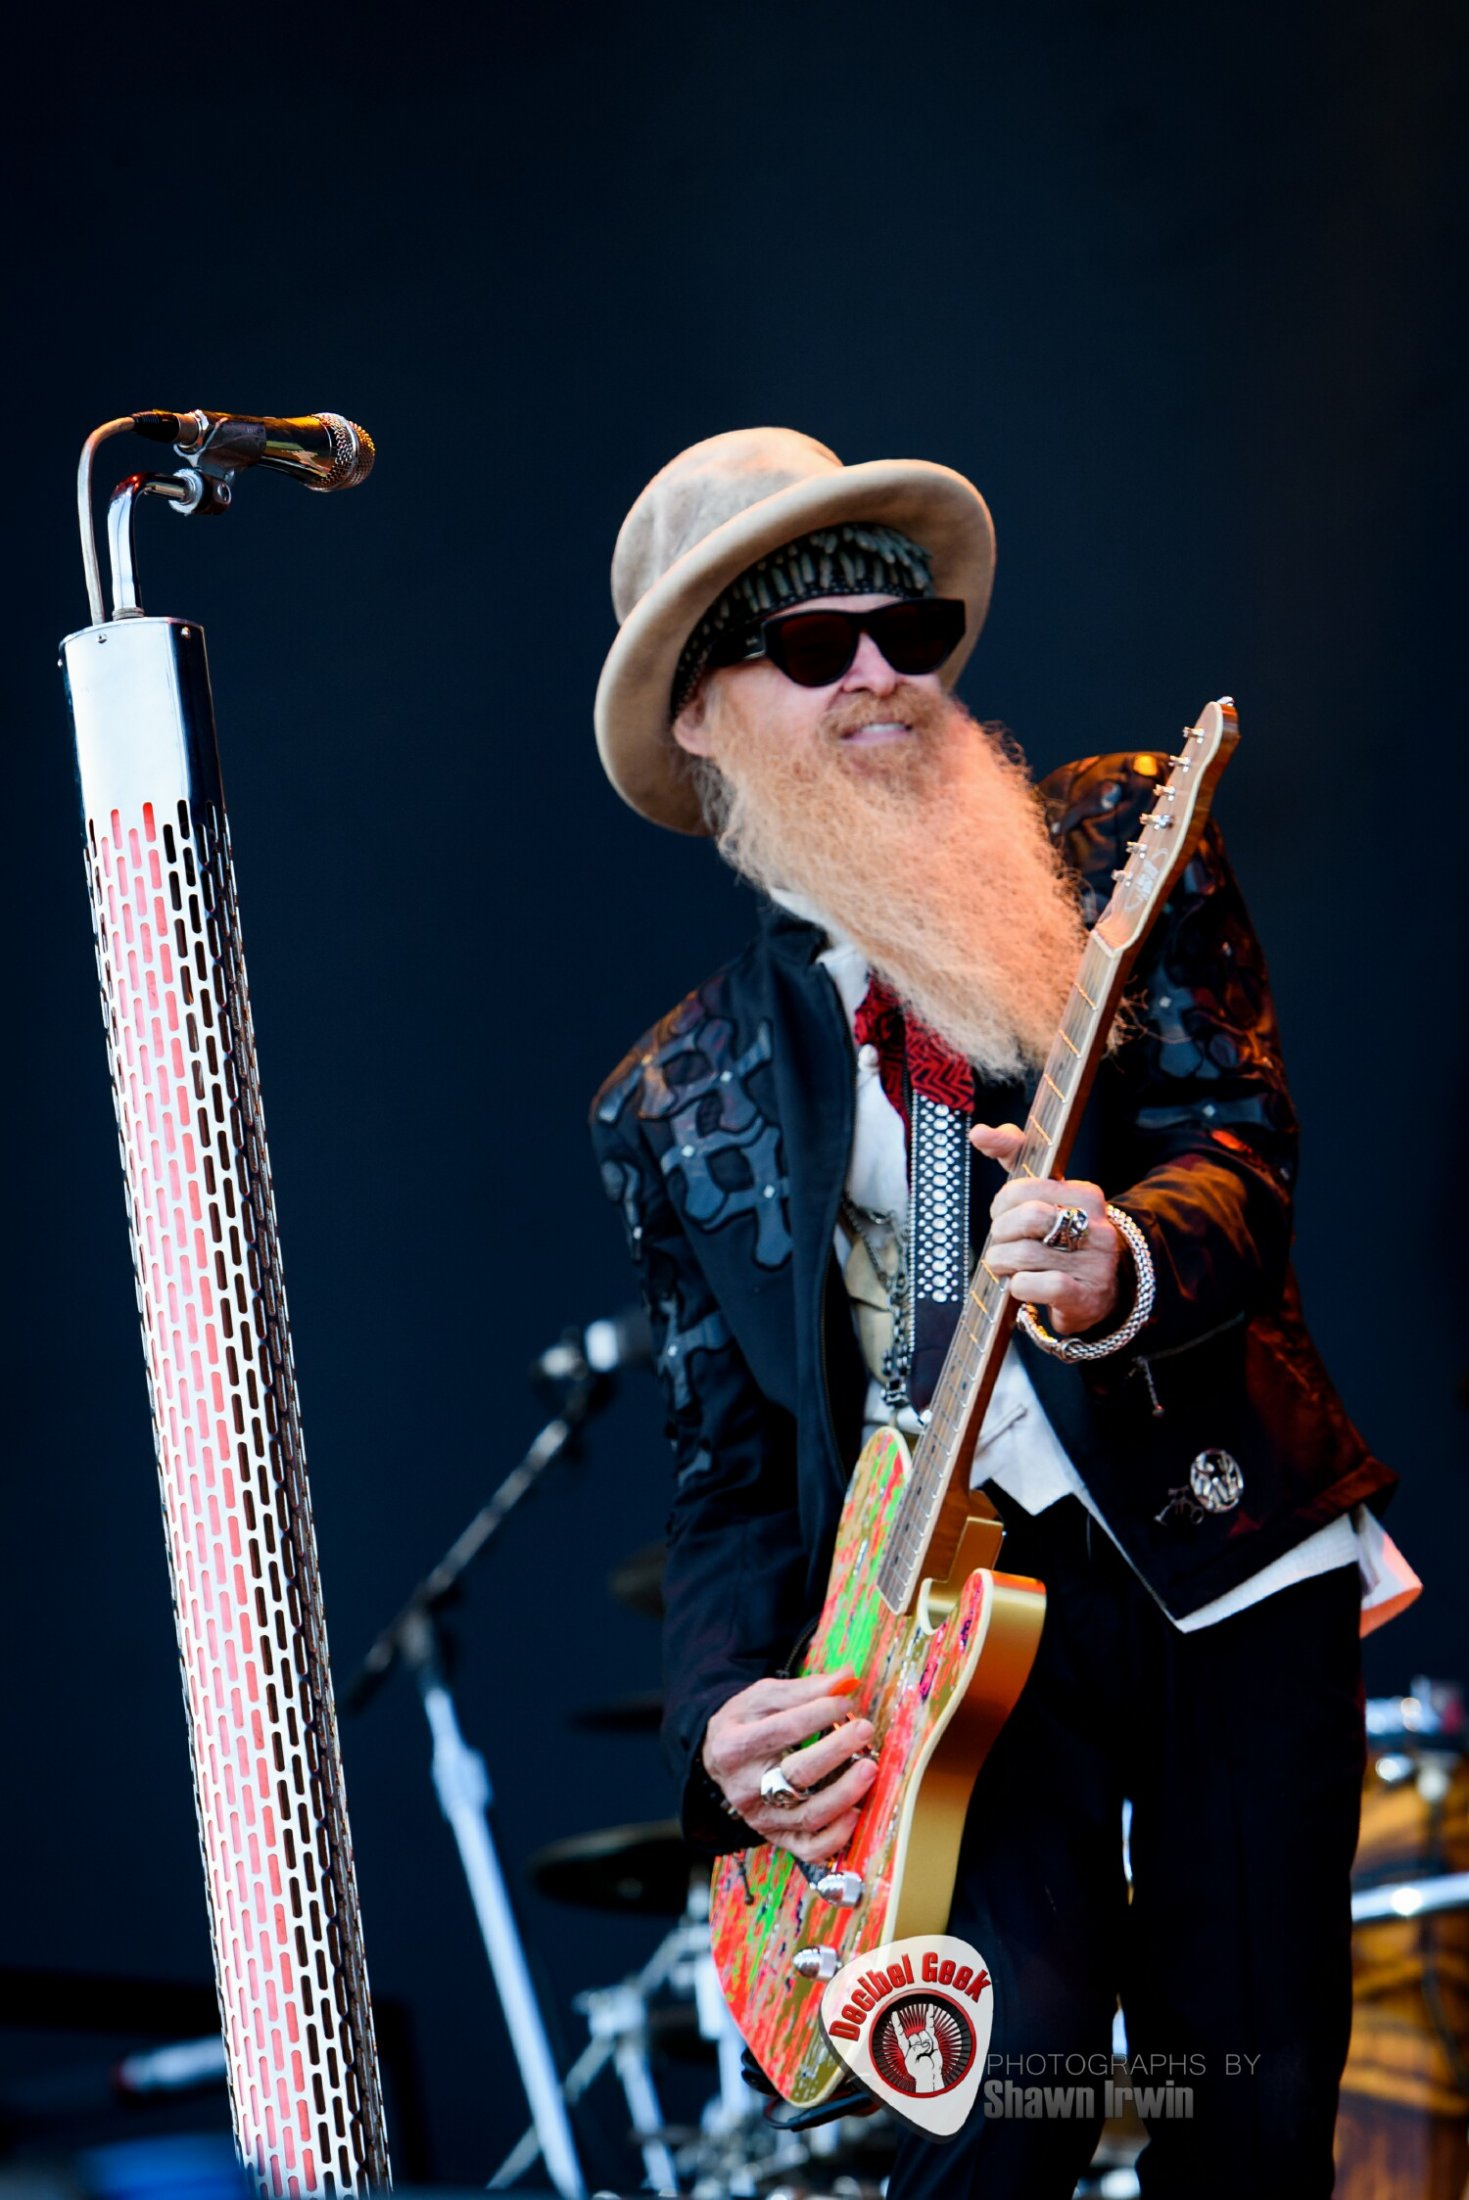 ZZ-Top #1-Sweden Rock 2019-Shawn Irwin